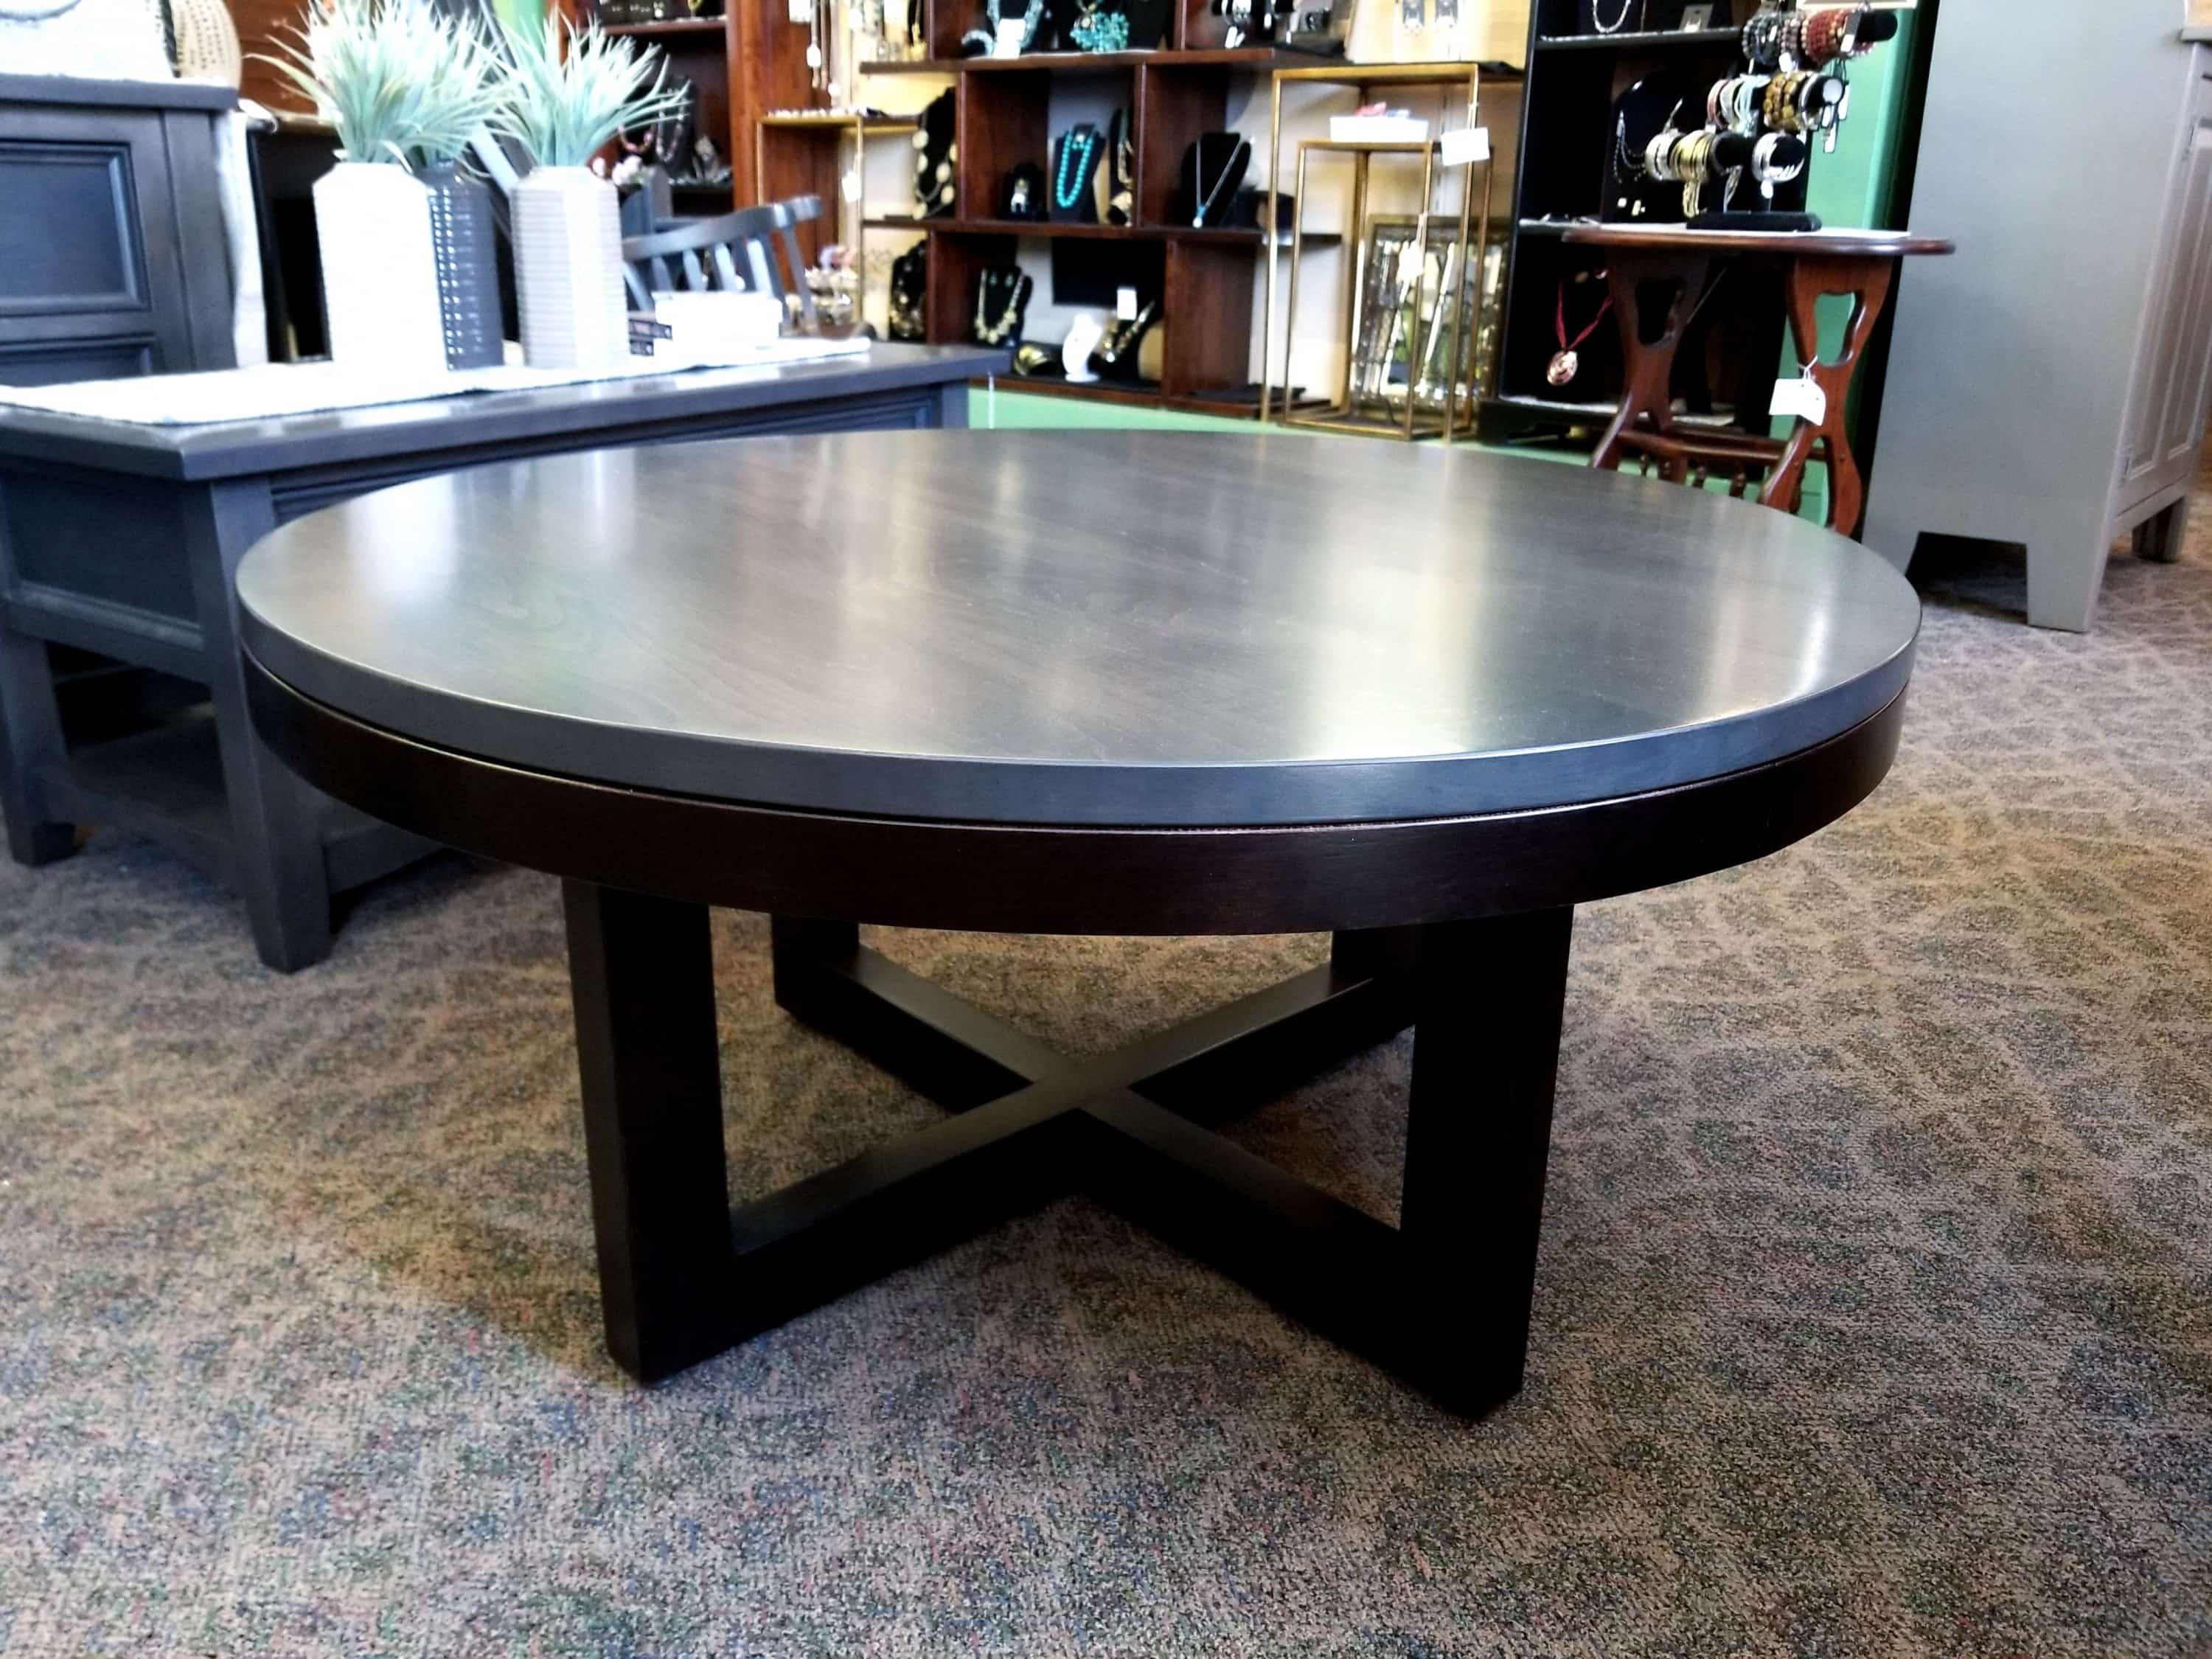 xcell round coffee table shown in brown maple with a two tone onyx base and a st grey top